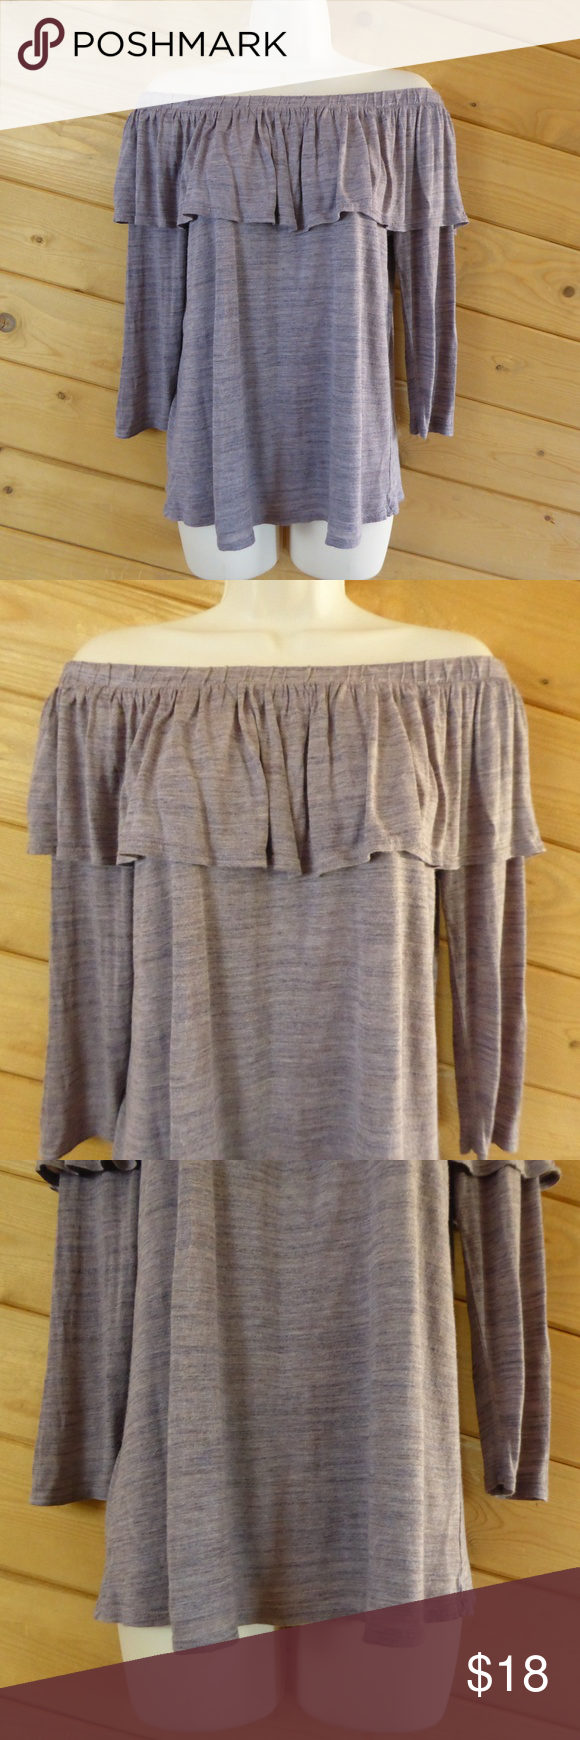 05e6c15e47ef3 Dolan Anthropologie Dolan Left Coast Collection Charla Off The Shoulder  Ruffle Top Size M 100% Modal - Hand Wash Cold Great Condition Measurements  (Laying ...